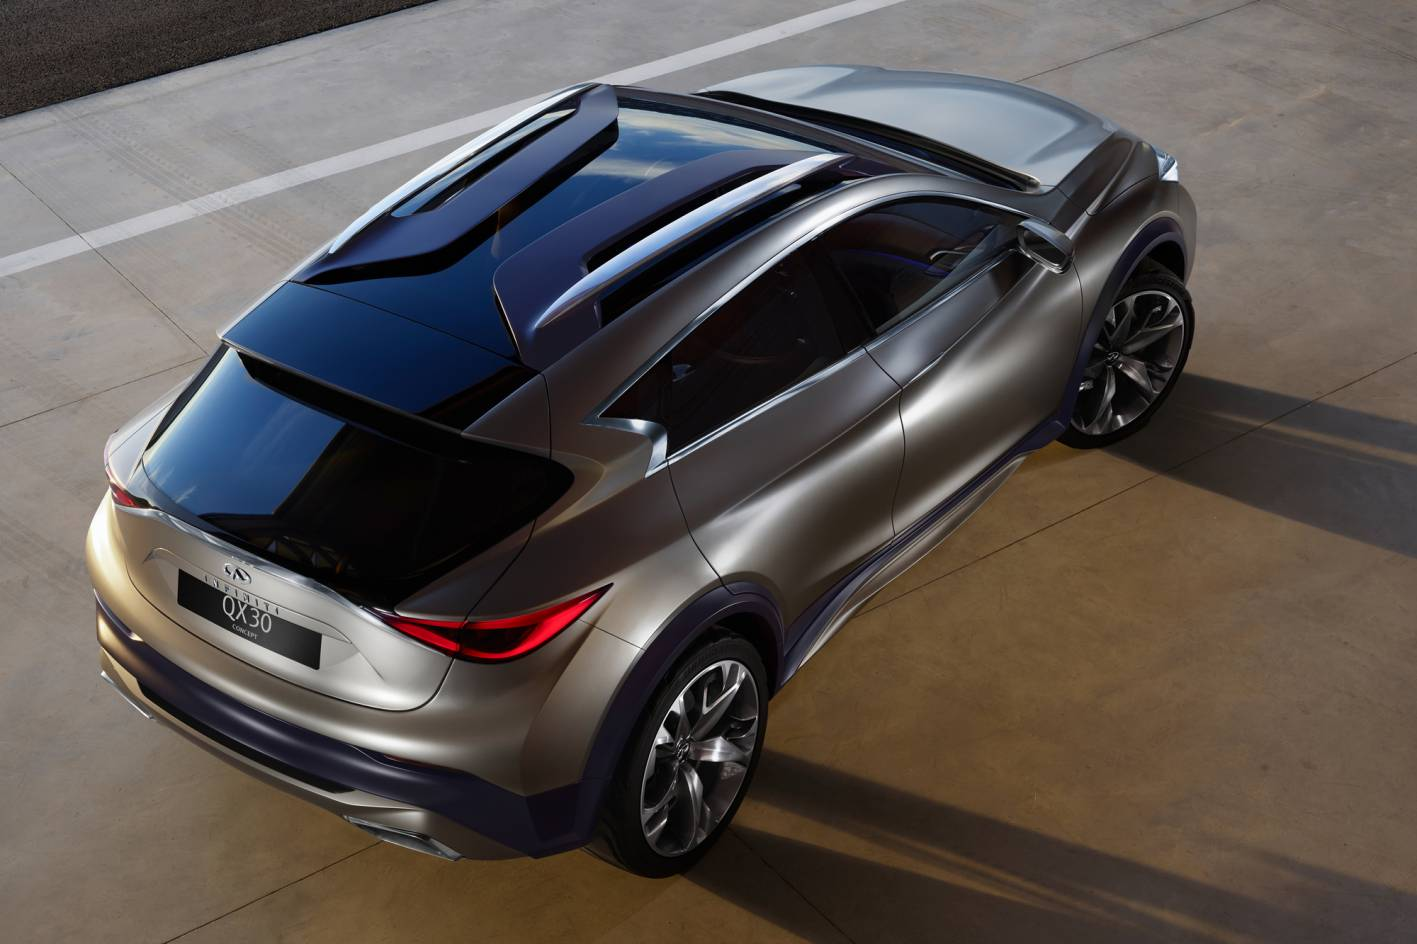 2018 Infiniti Qx30 >> Infiniti QX30 Concept officially unveiled - ForceGT.com